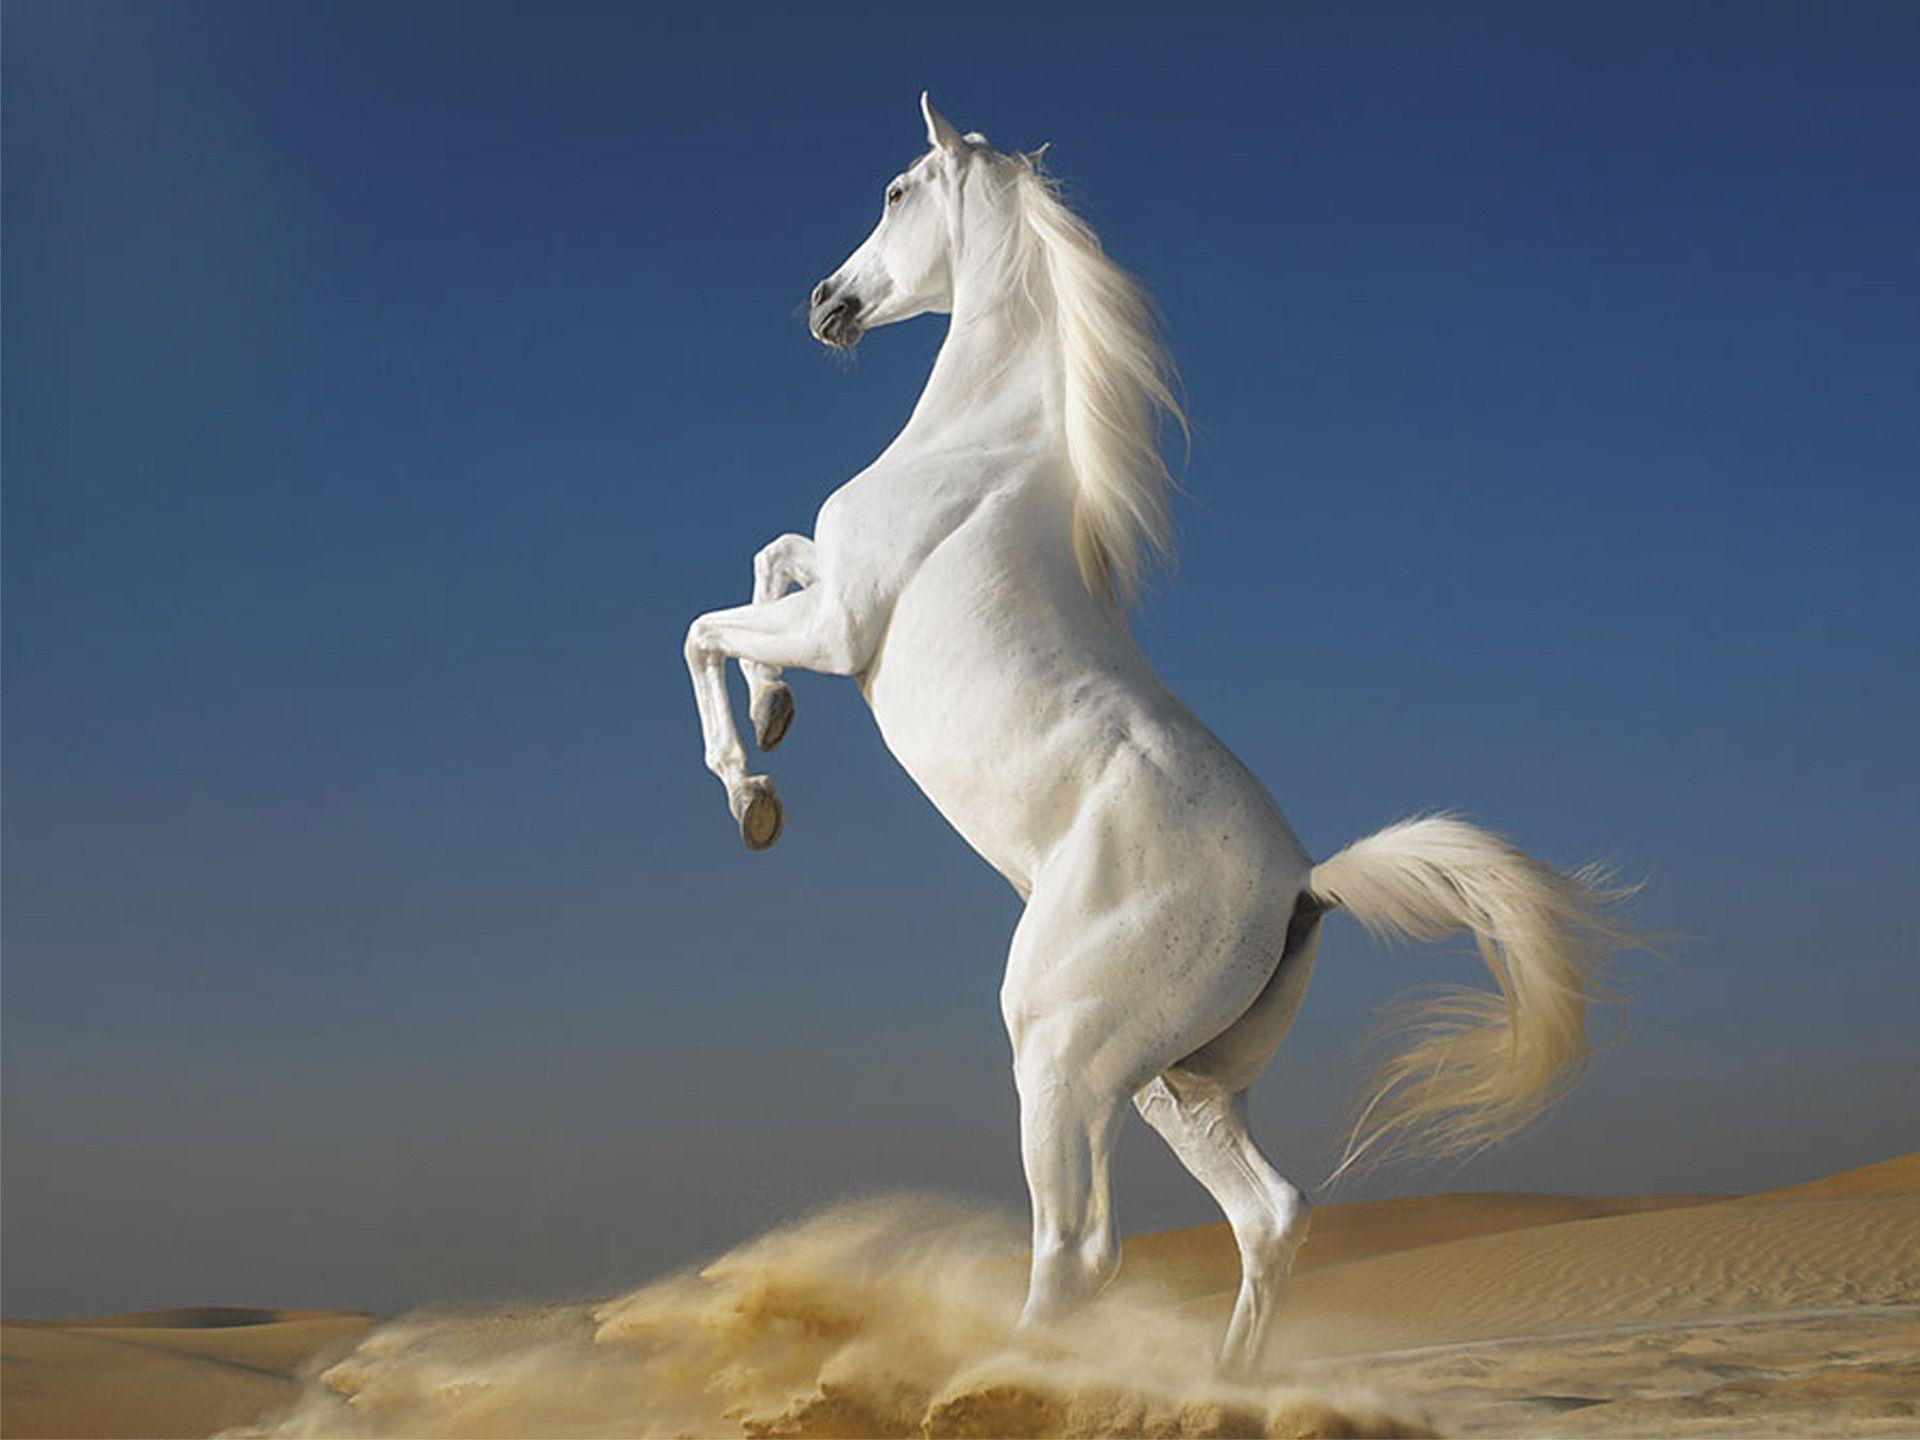 white horse desktop hd wallpaper desktop backgrounds for free hd